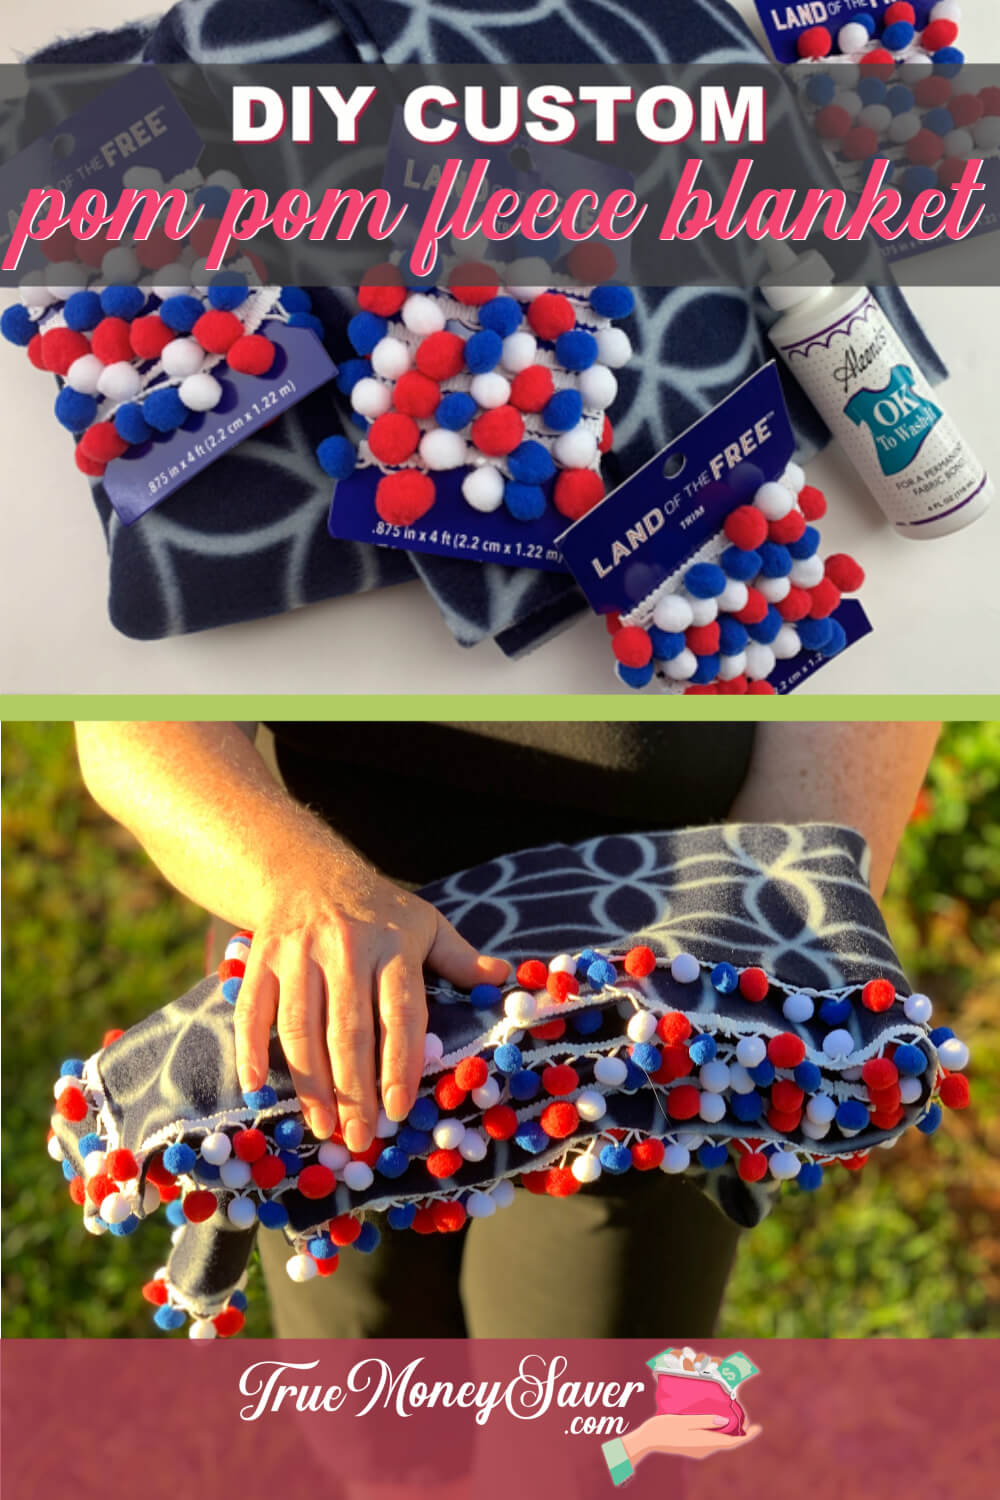 Looking for a great gift to DIY? Check out this DIY Pom Pom Fleece Blanket gift and no sew fun fleece blanket tutorial! It\'s an easy no sew fleece blanket that you can make today. Add these custom fleece blanket gifts to your gift list this year!